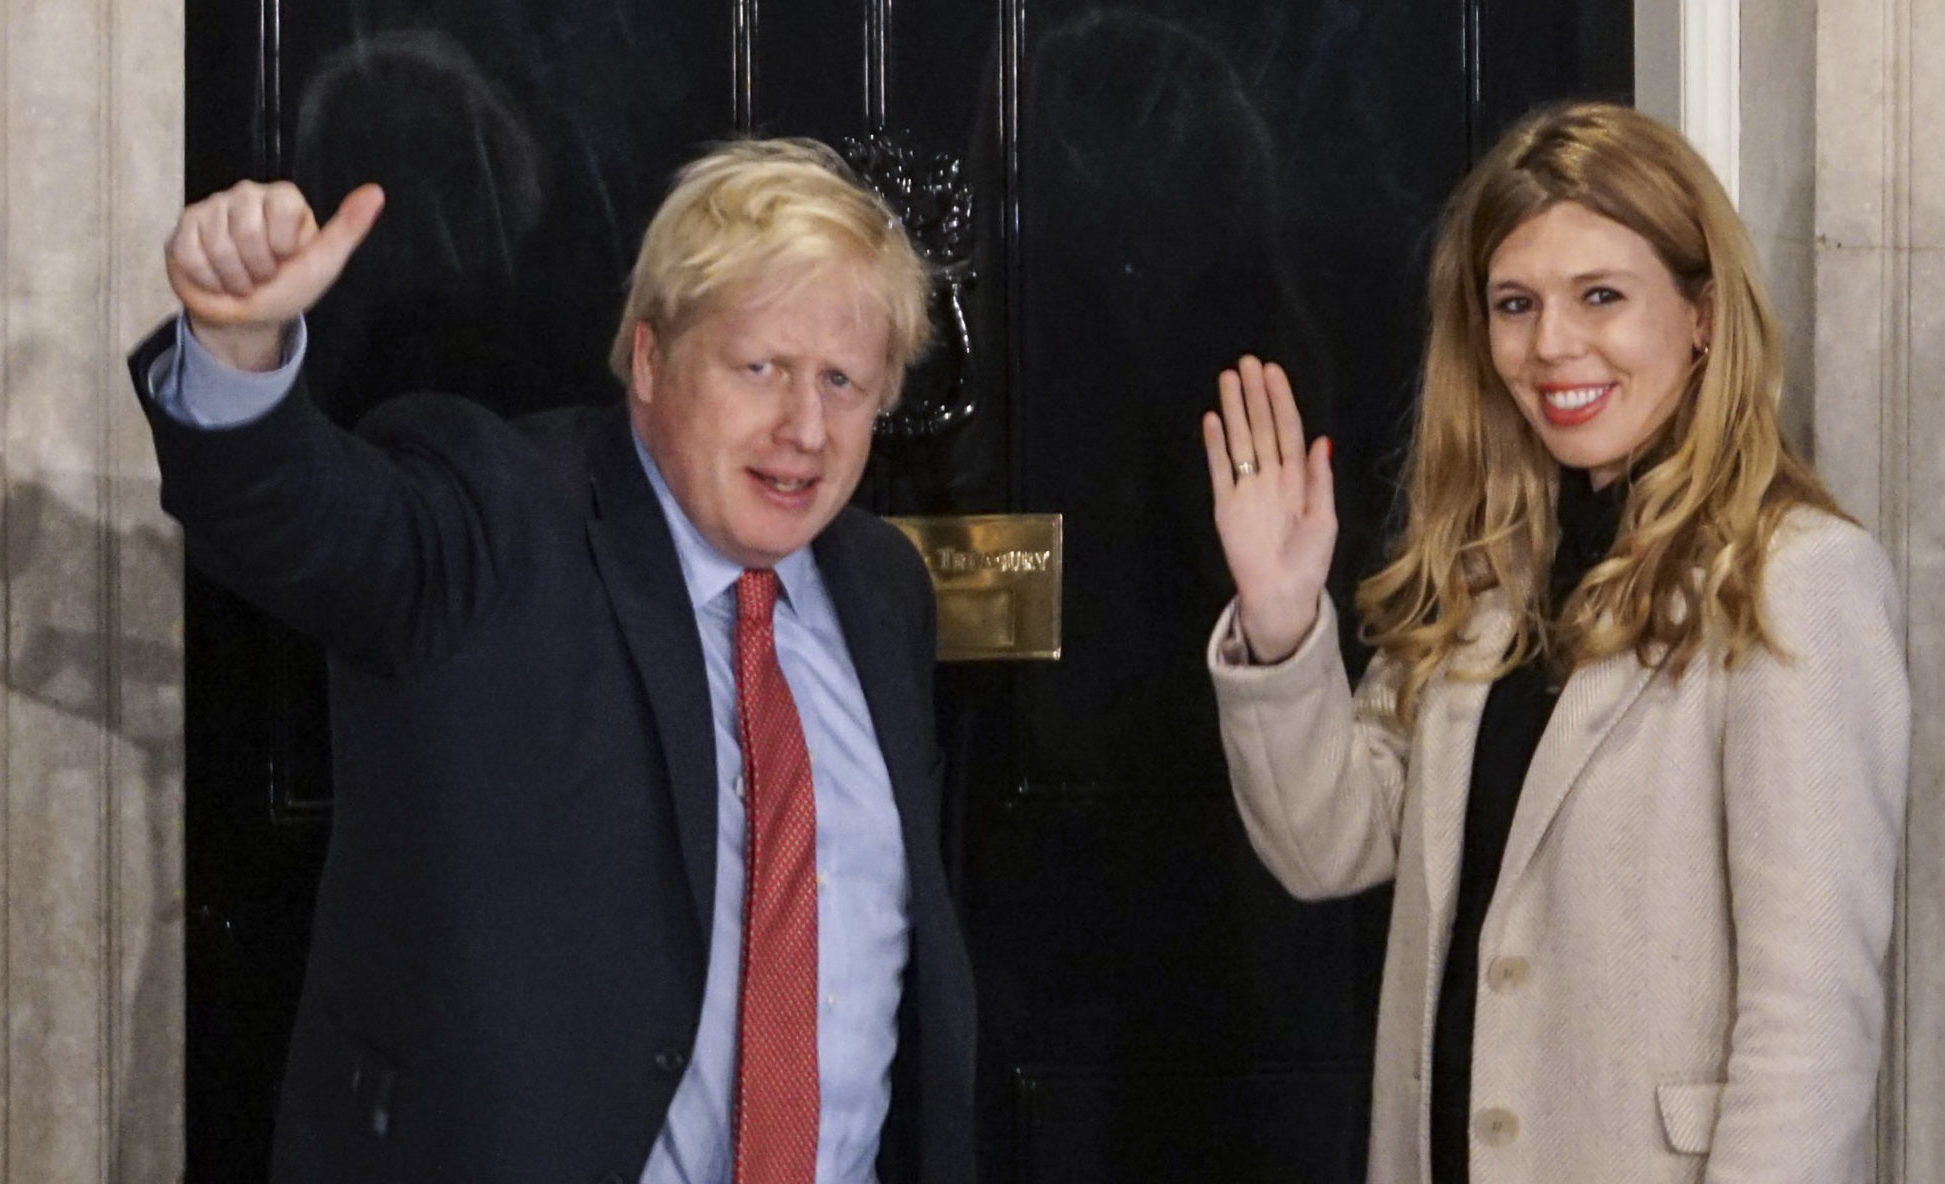 Prime Minister Boris Johnson and his girlfriend Carrie Symonds outside No 10 Downing Street